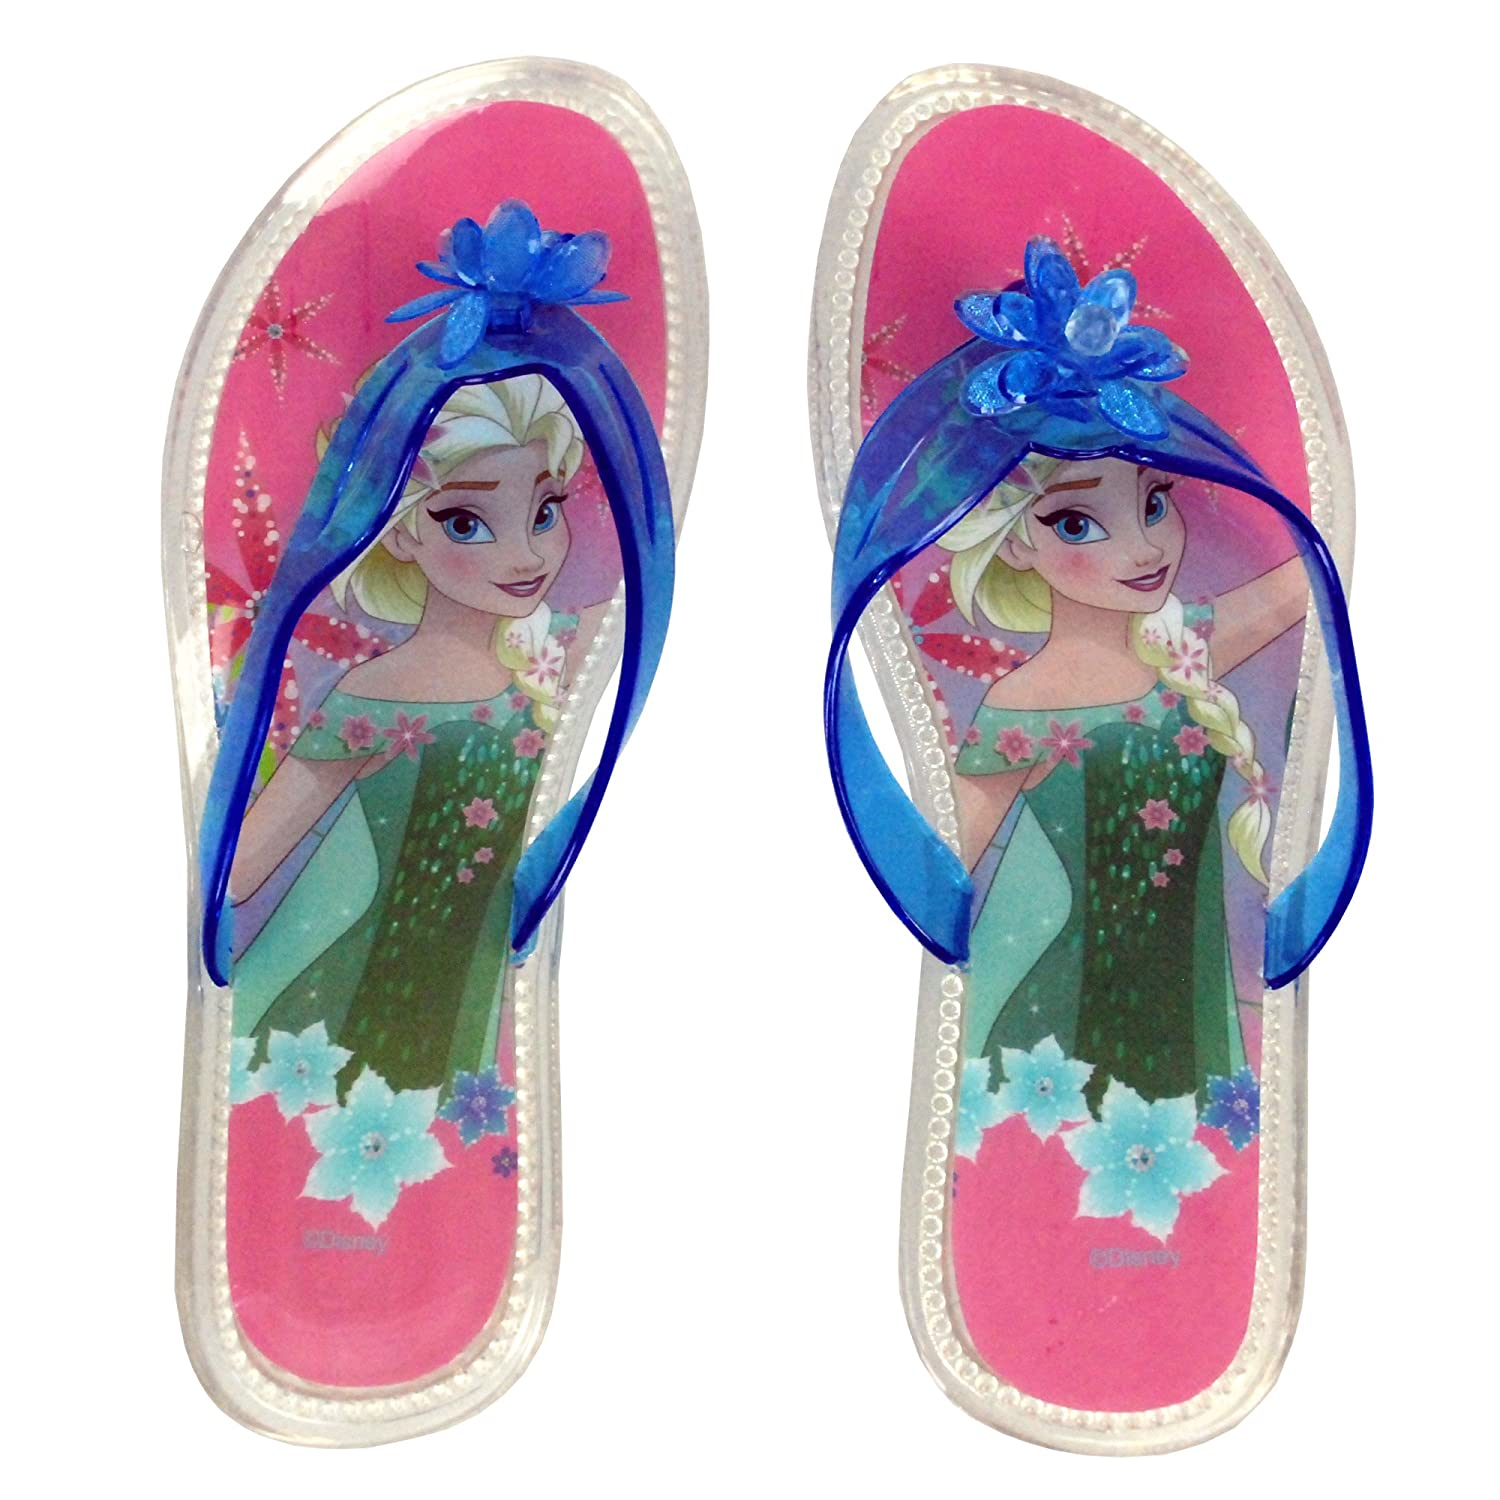 f0e9522a9f80 Disney Frozen Elsa Official Children Girls Flip Flops PVC Sandals Swimming  Pool Beach Slippers Shoes UK Sizes (5years to 9years)  Amazon.co.uk  Shoes    Bags